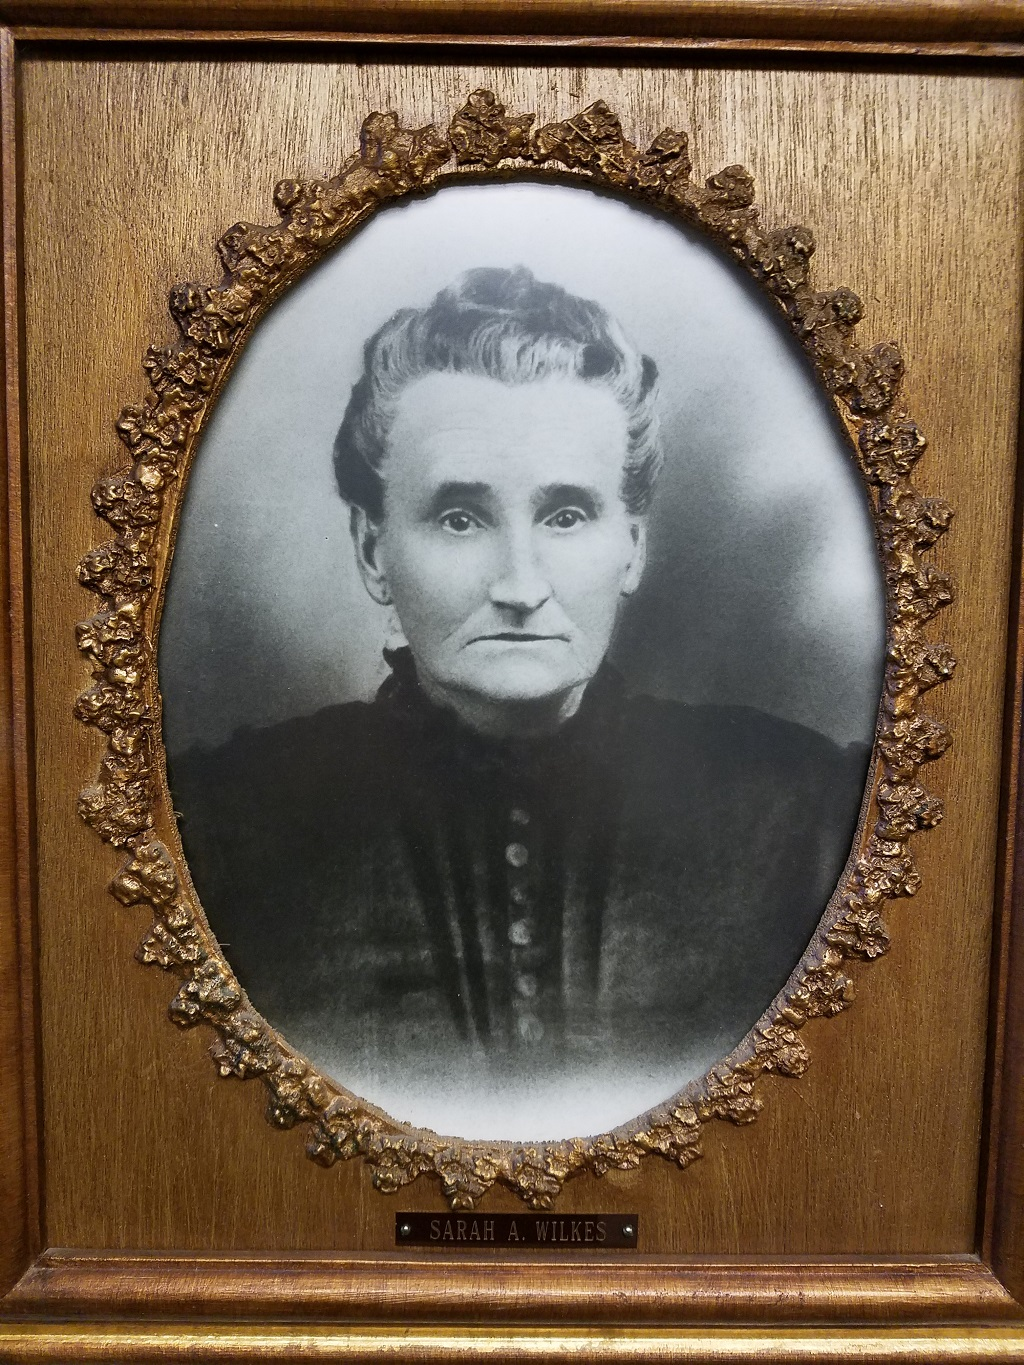 Sarah A Wilkes, wife of William C Wilkes, east Portland pioneer 1850's. Click to enlarge